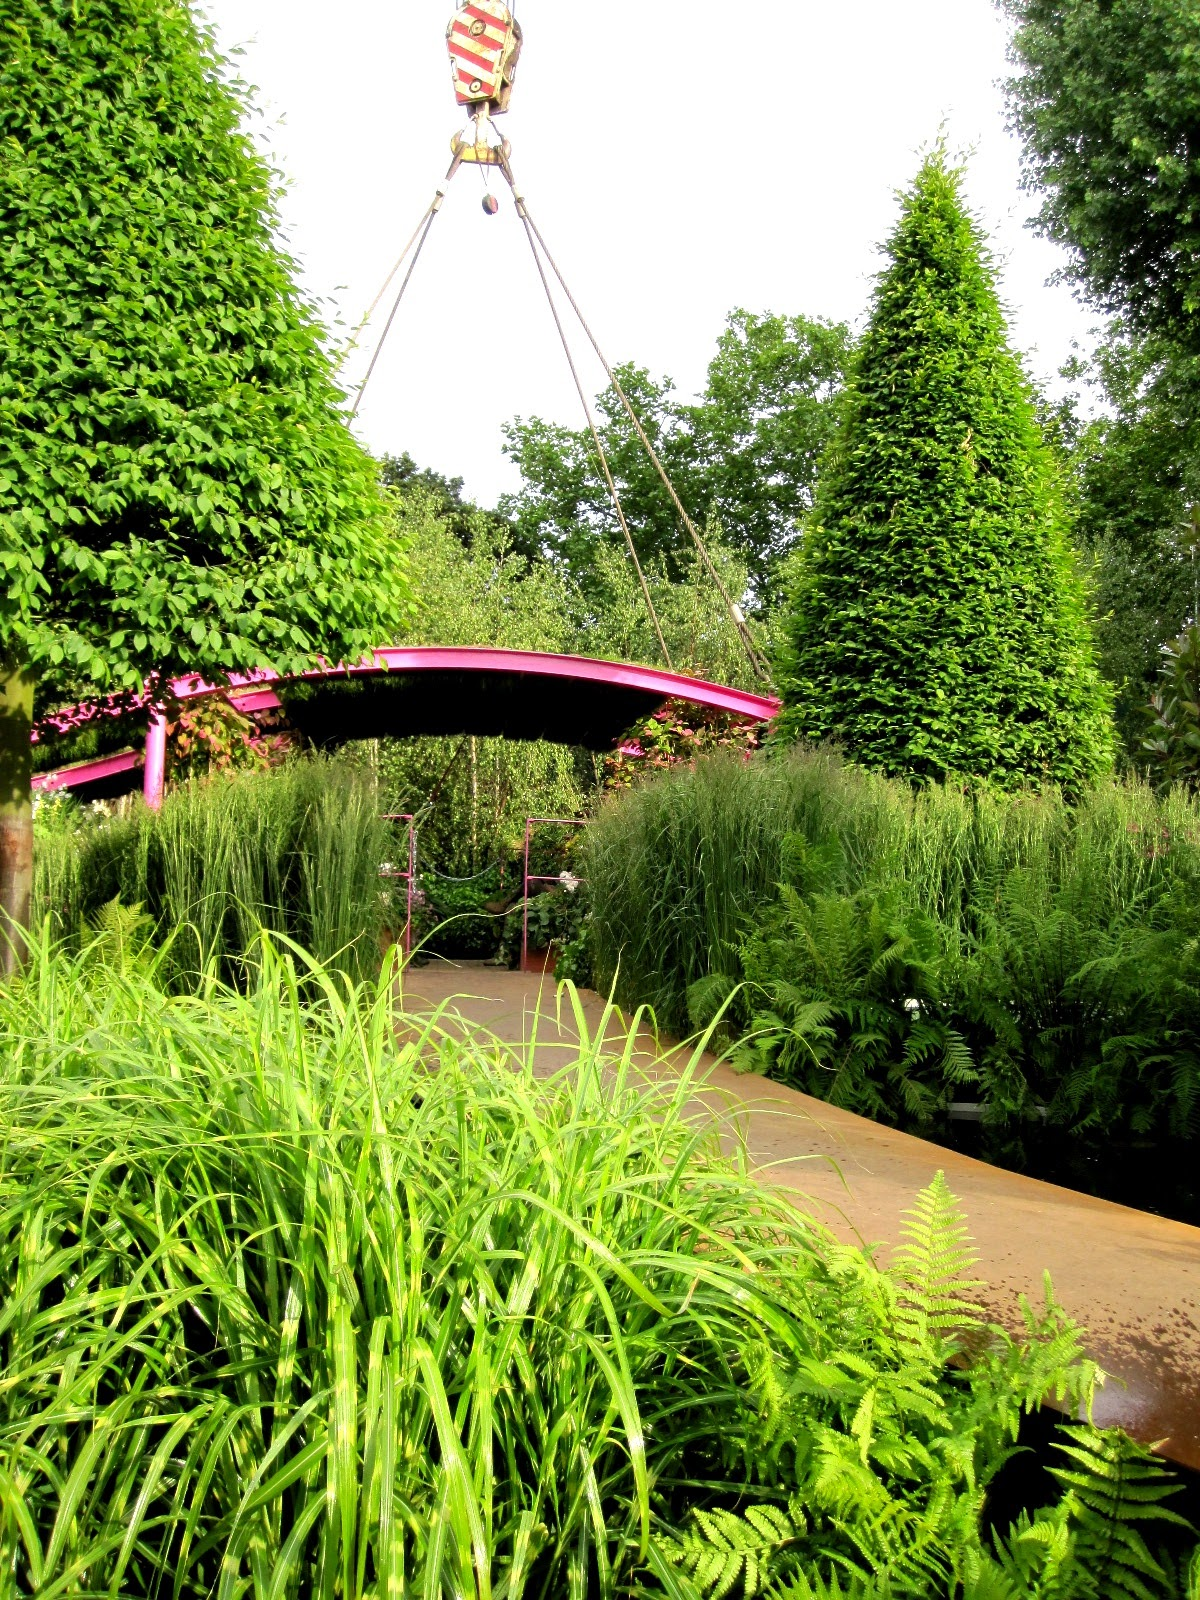 Fi's Growing, Gardening And Design: Chelsea